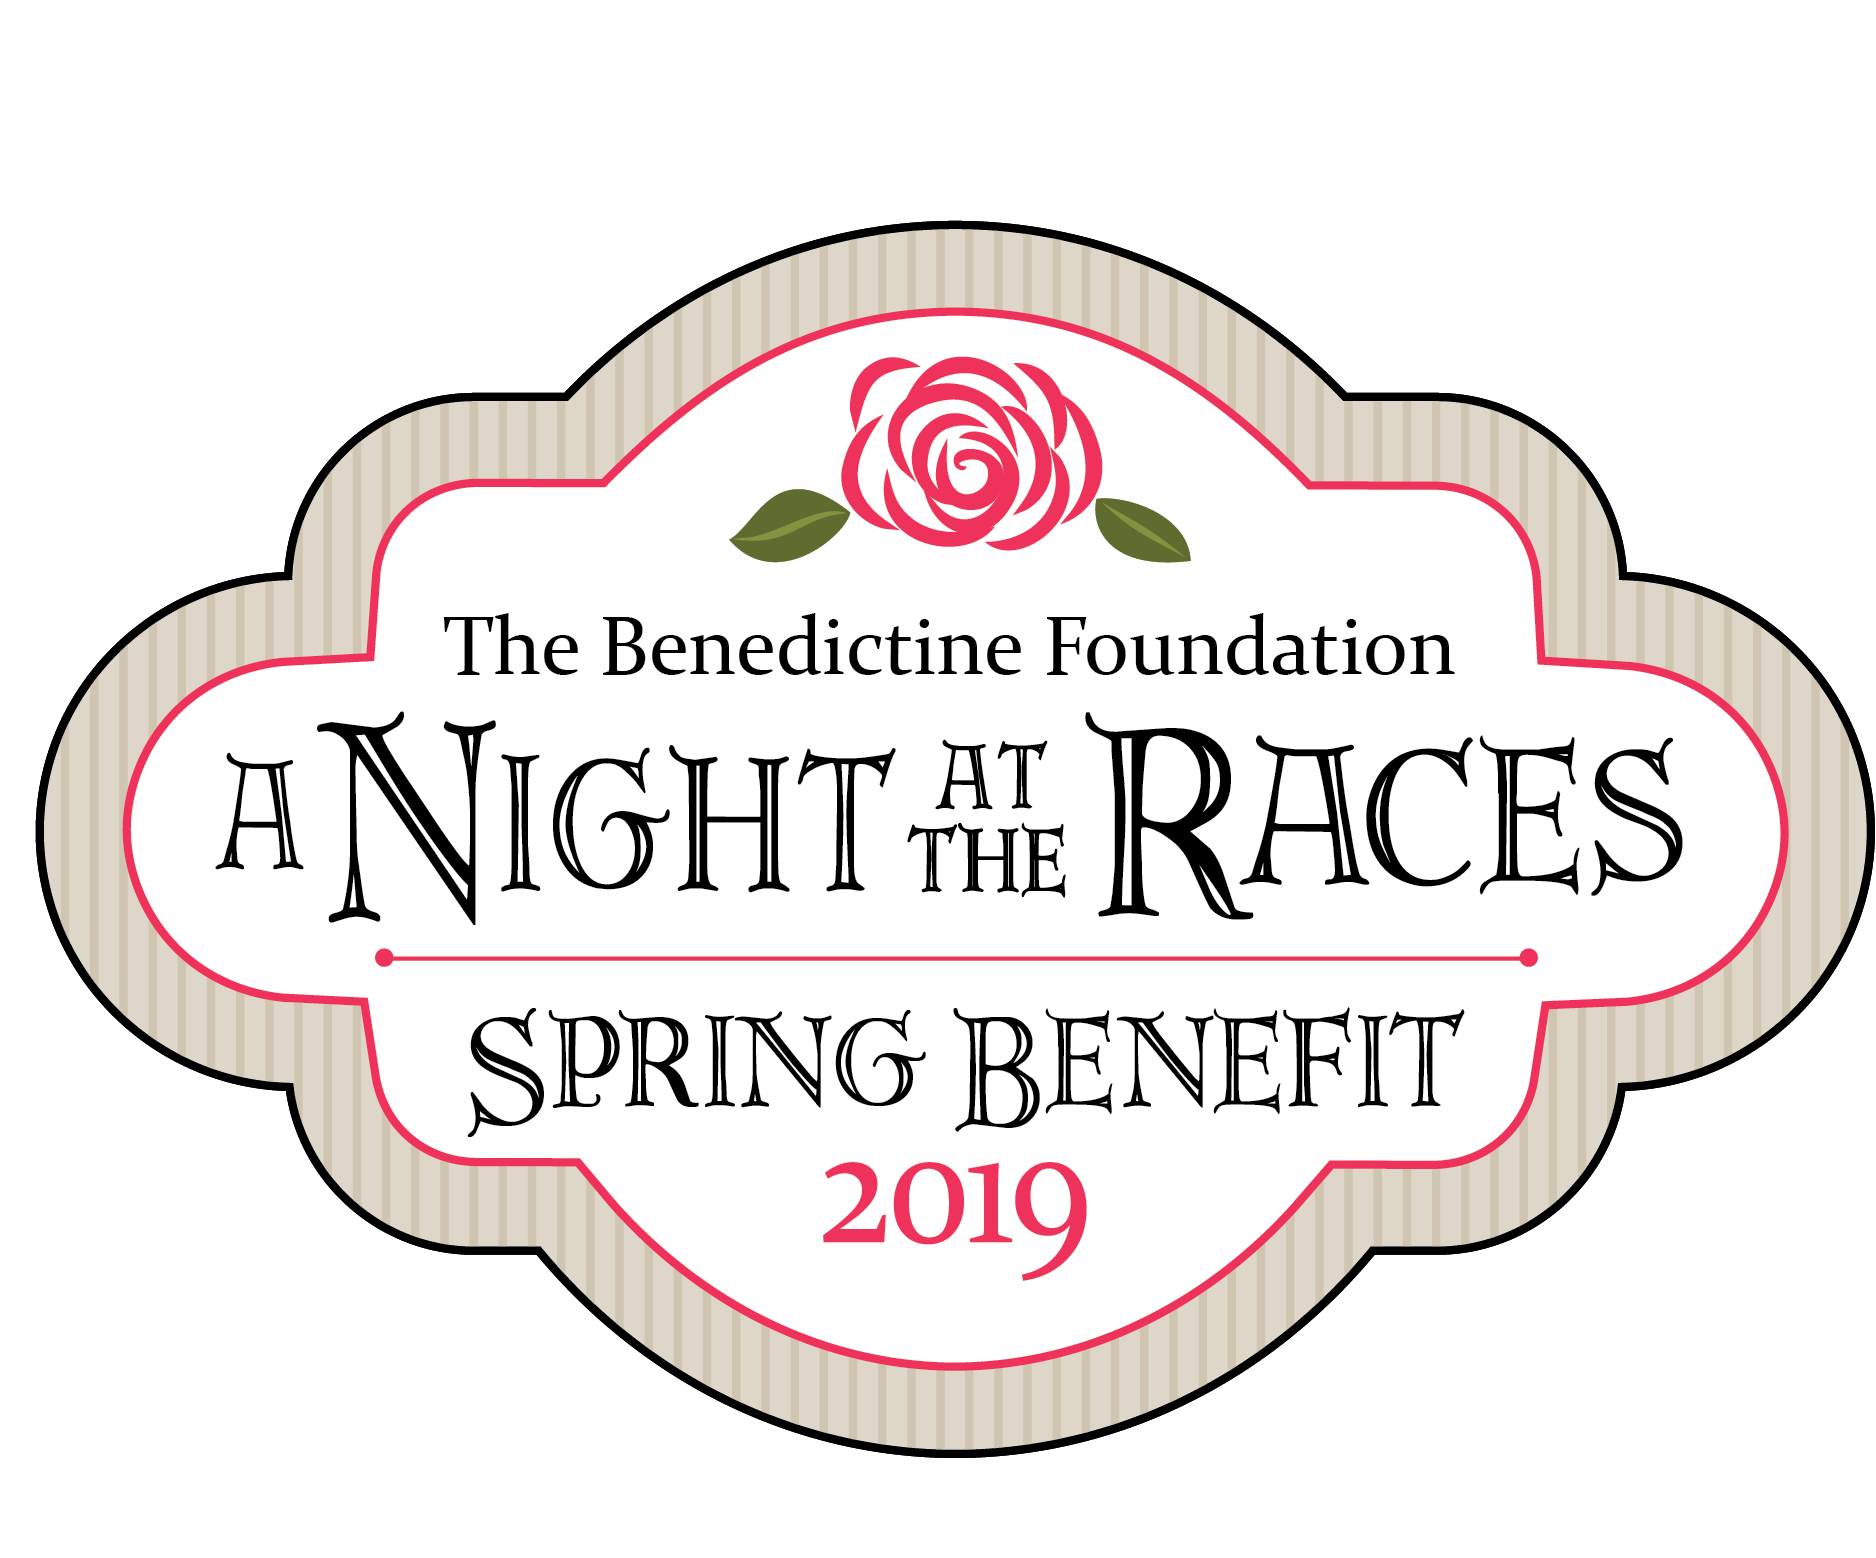 Benedictine's annual Spring Benefit: A Night at the Races, set for May 4th